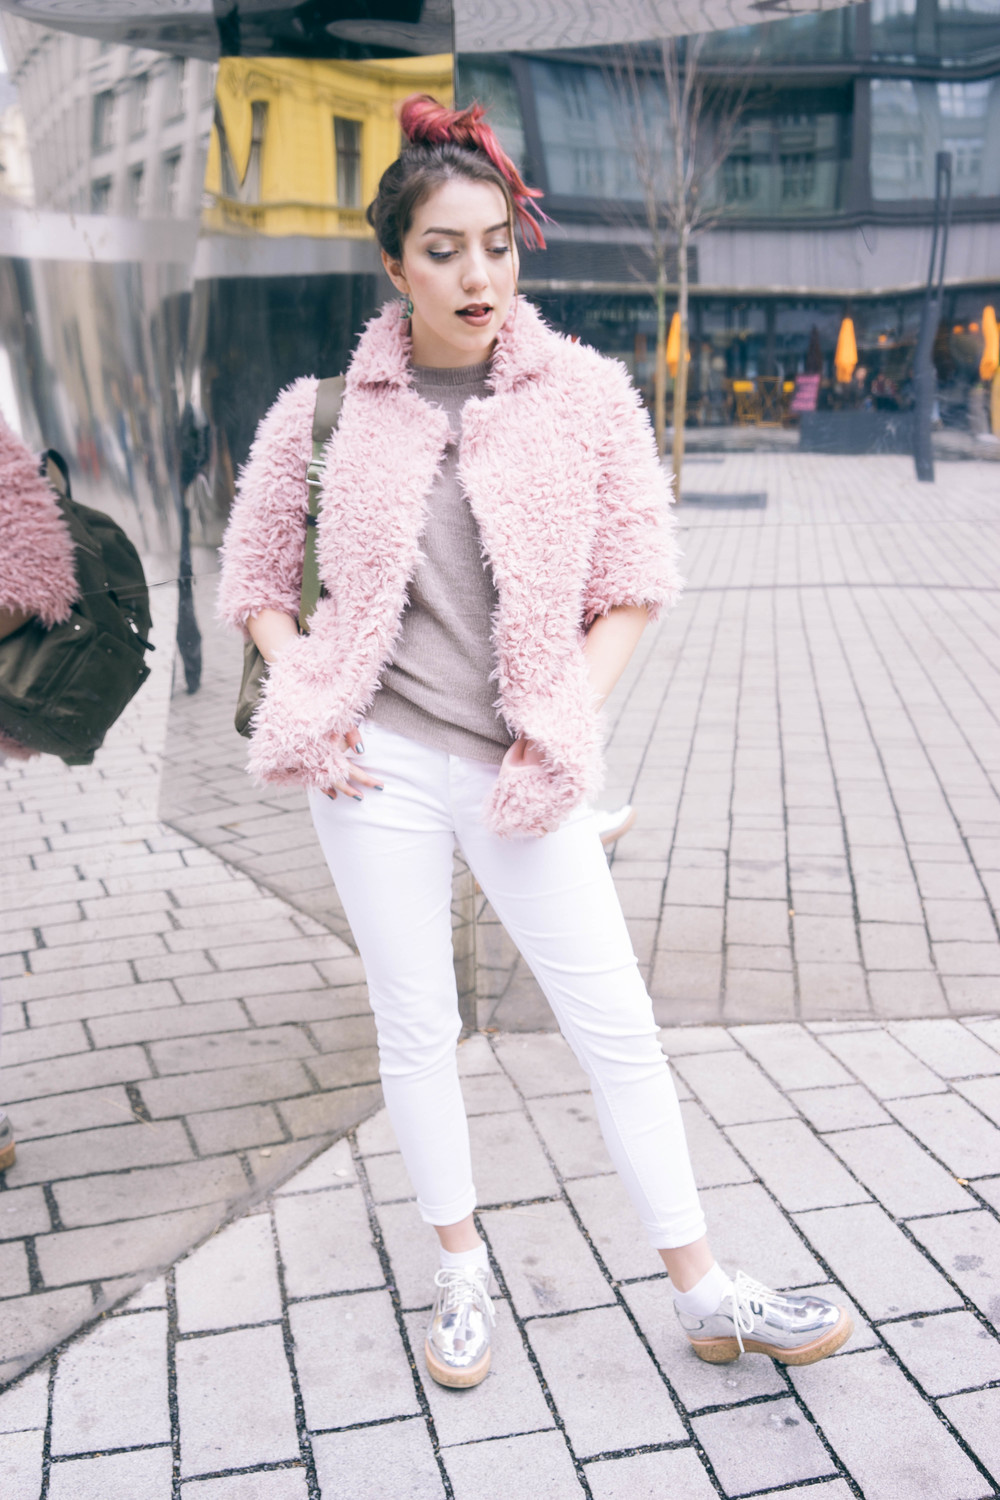 How to wear pink everyday - with a basic white outfit and awesome silver shoes. More fashion and beauty tips at  www.MARINASAYS.com (@marinasays)